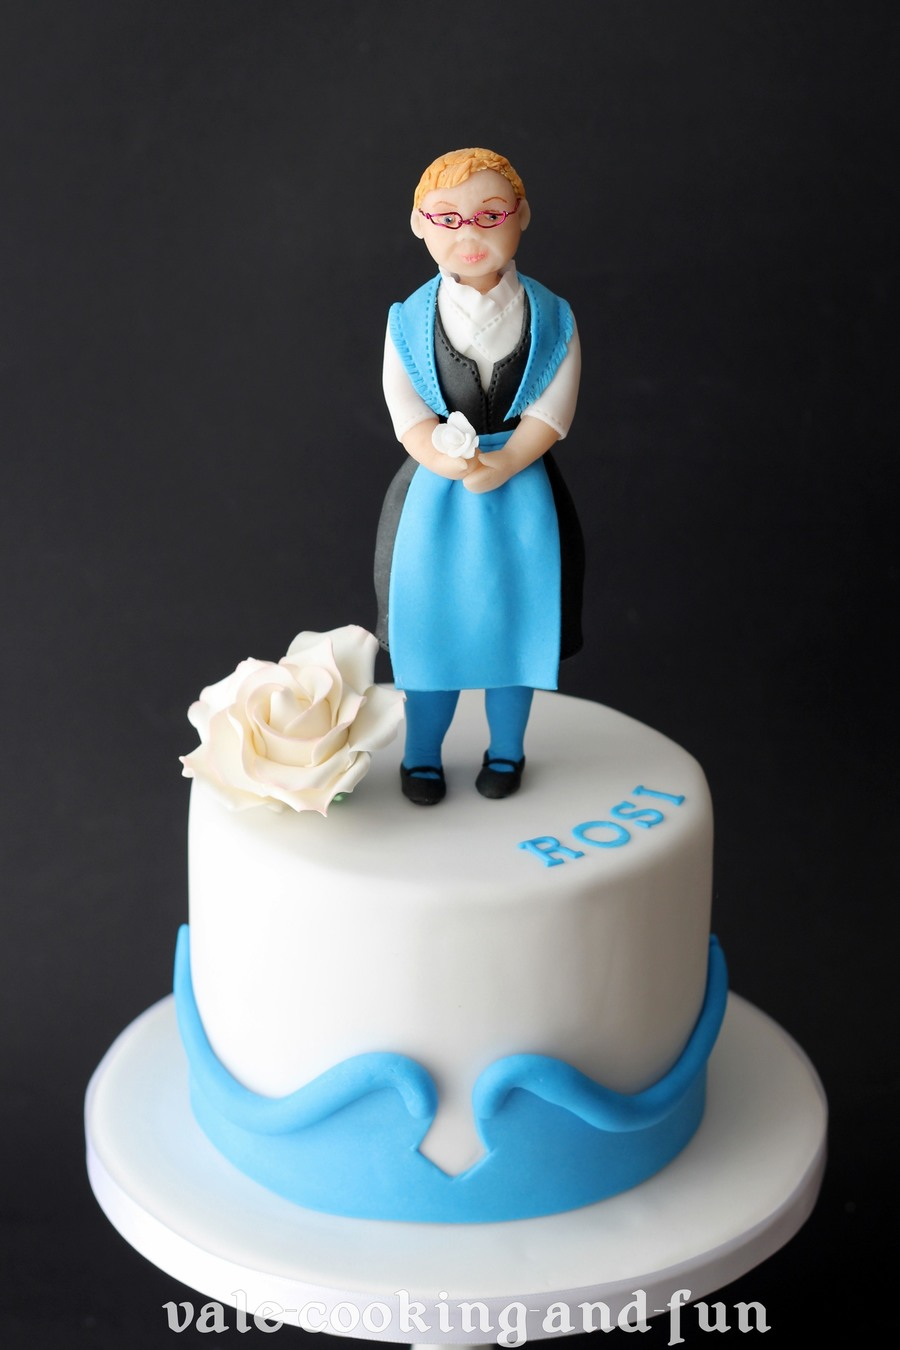 Birthday Cake With Figurine In German Traditional Dress